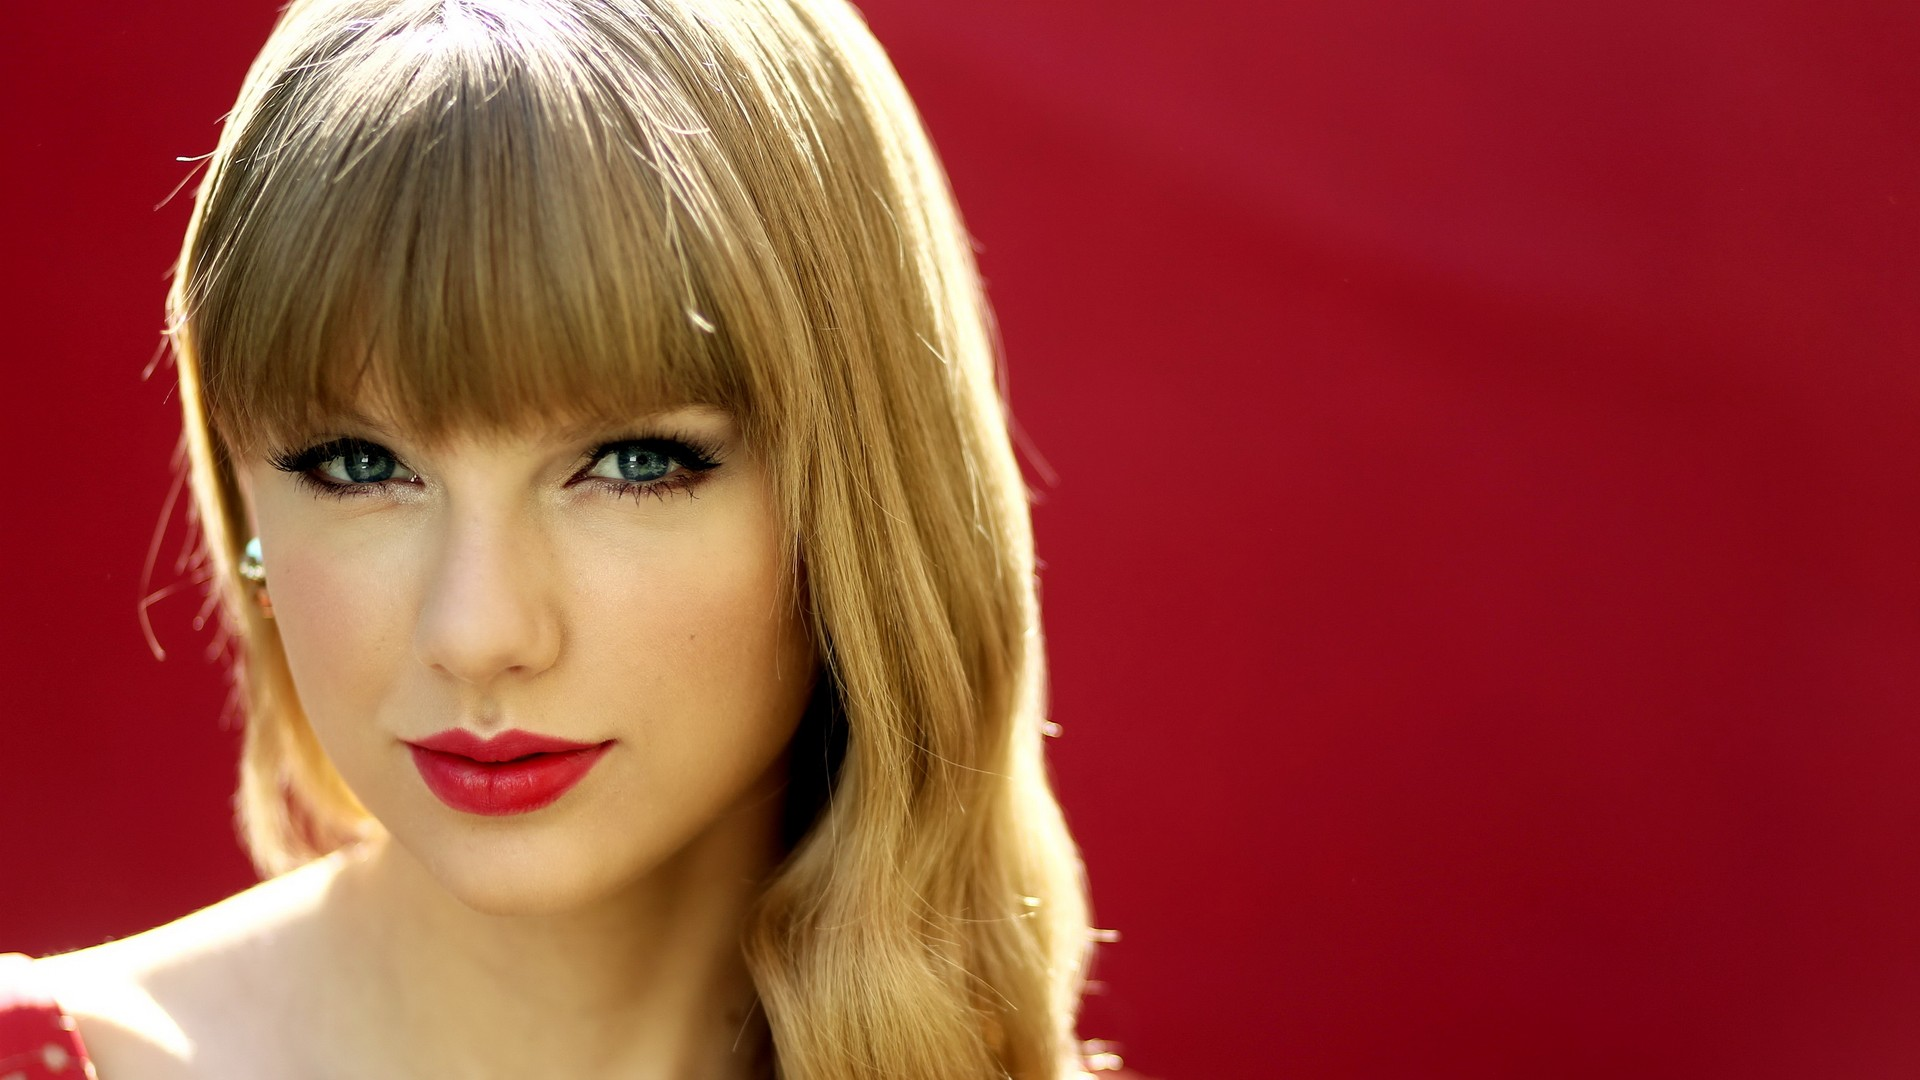 Red Taylor Swift 2013 HD Wallpaper ImageBankbiz 1920x1080